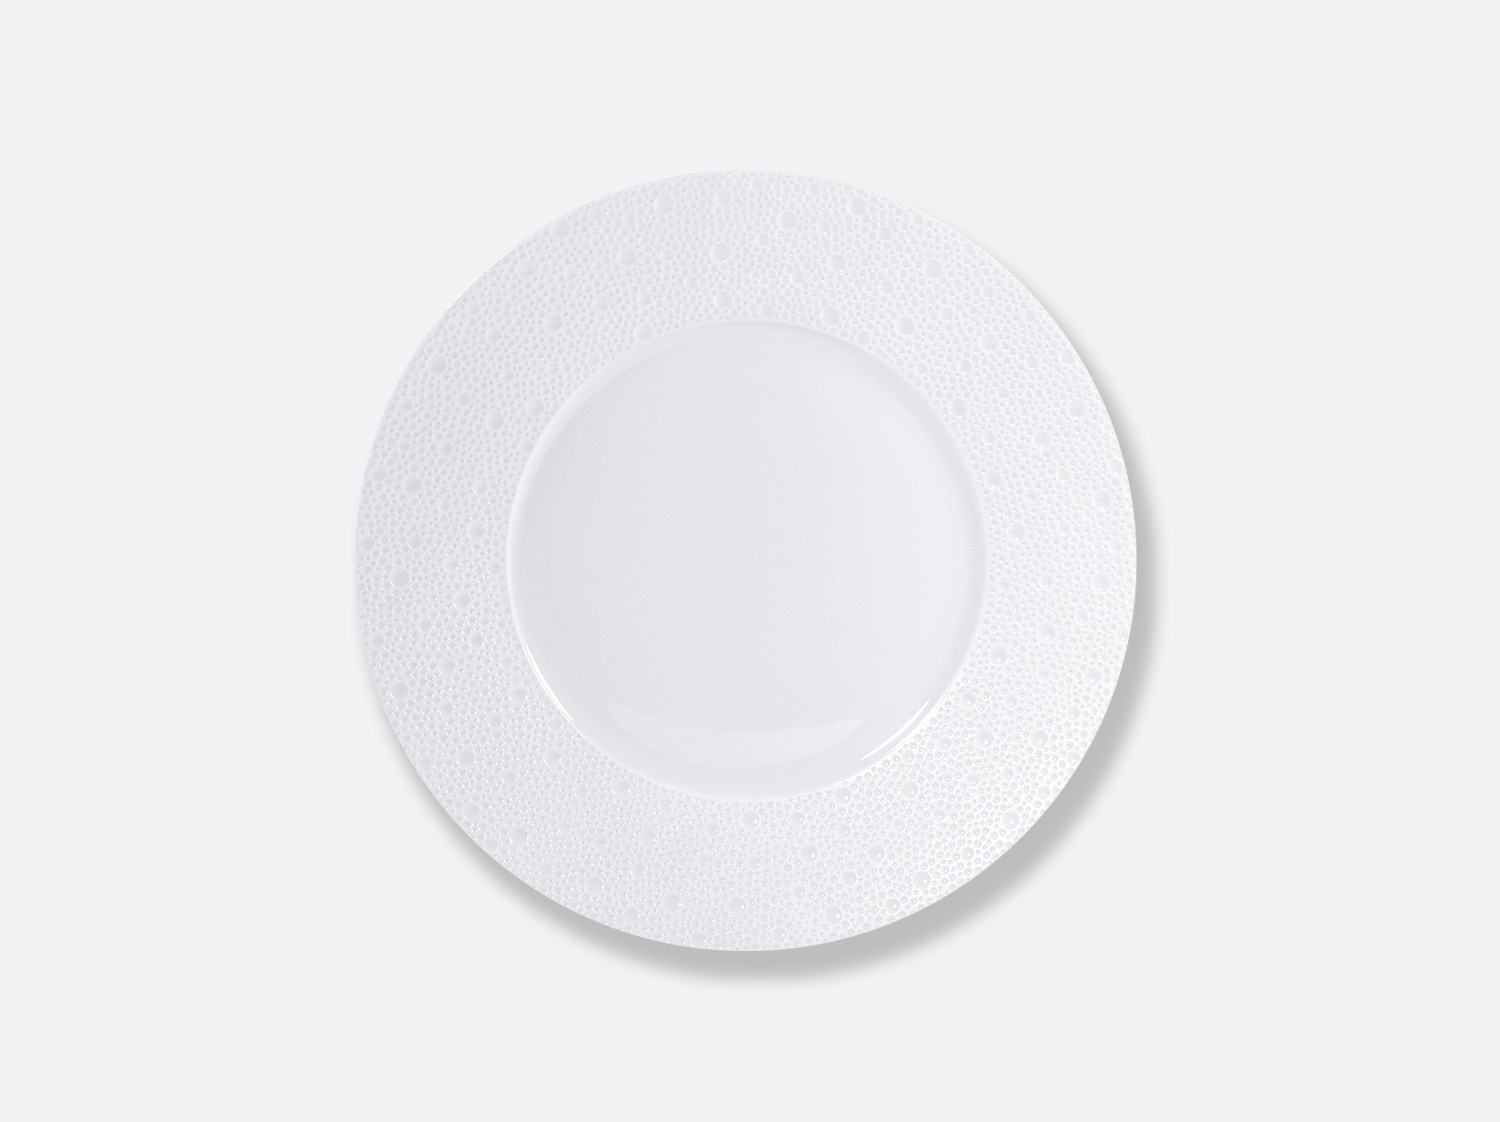 China Plate 26 cm of the collection Ecume | Bernardaud